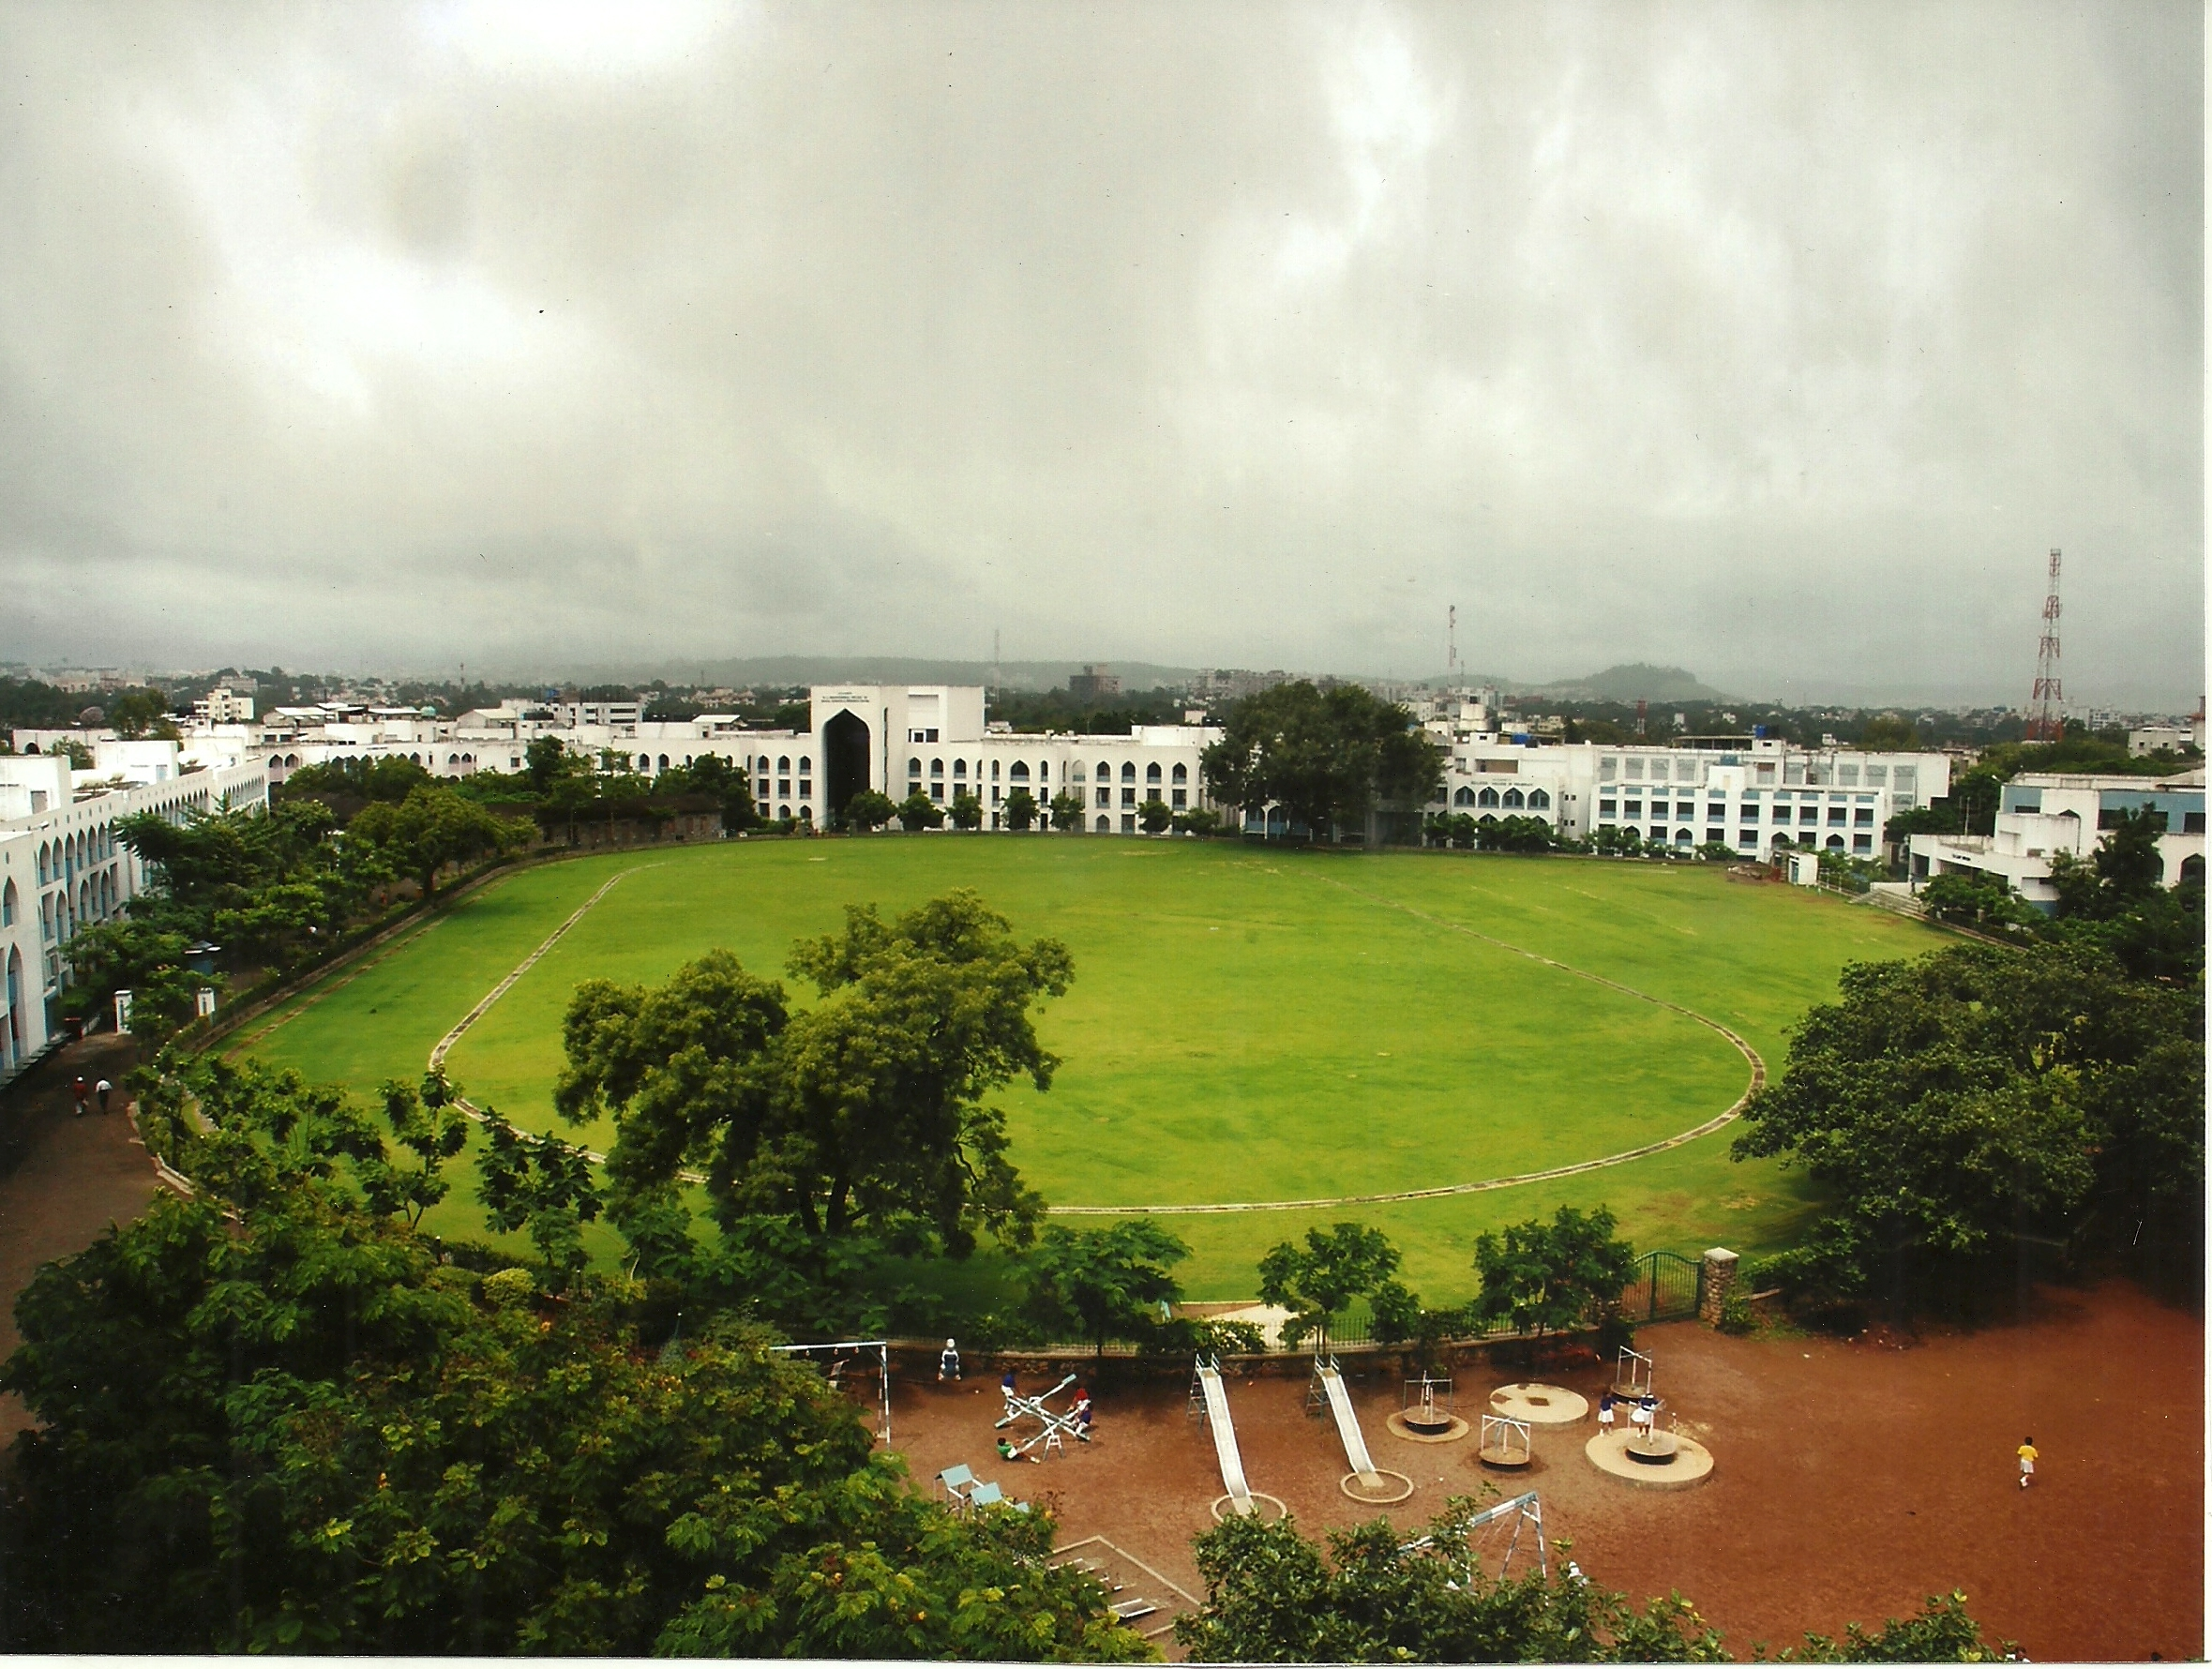 Ma Rangoonwala College Of Dental Sciences And Research Centre Pune